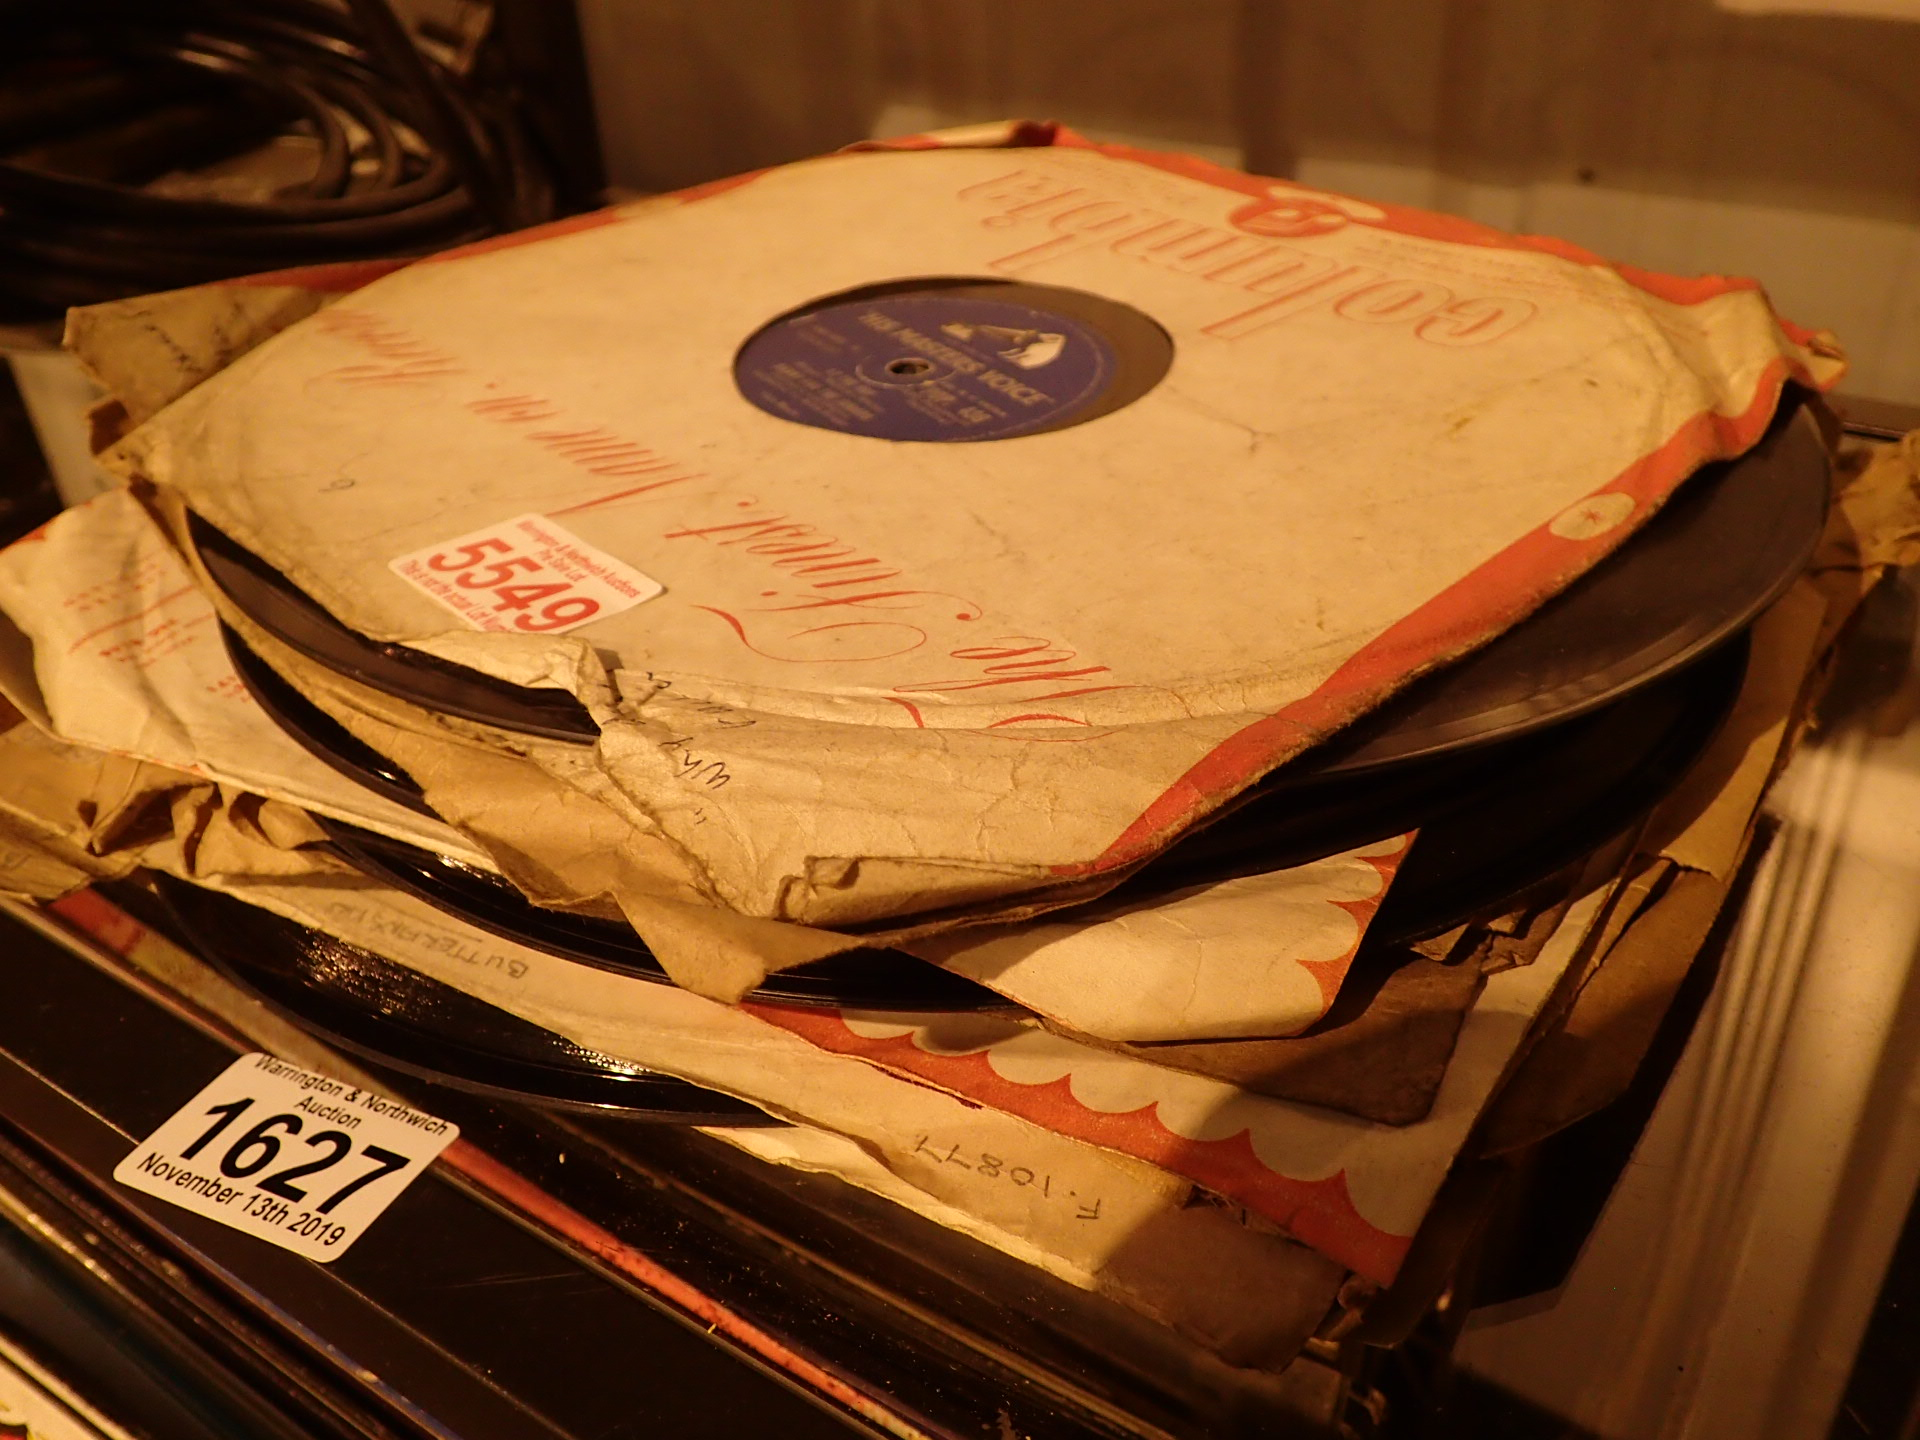 Lot 1627 - Mixed 78s including Lonnie Donegan and T